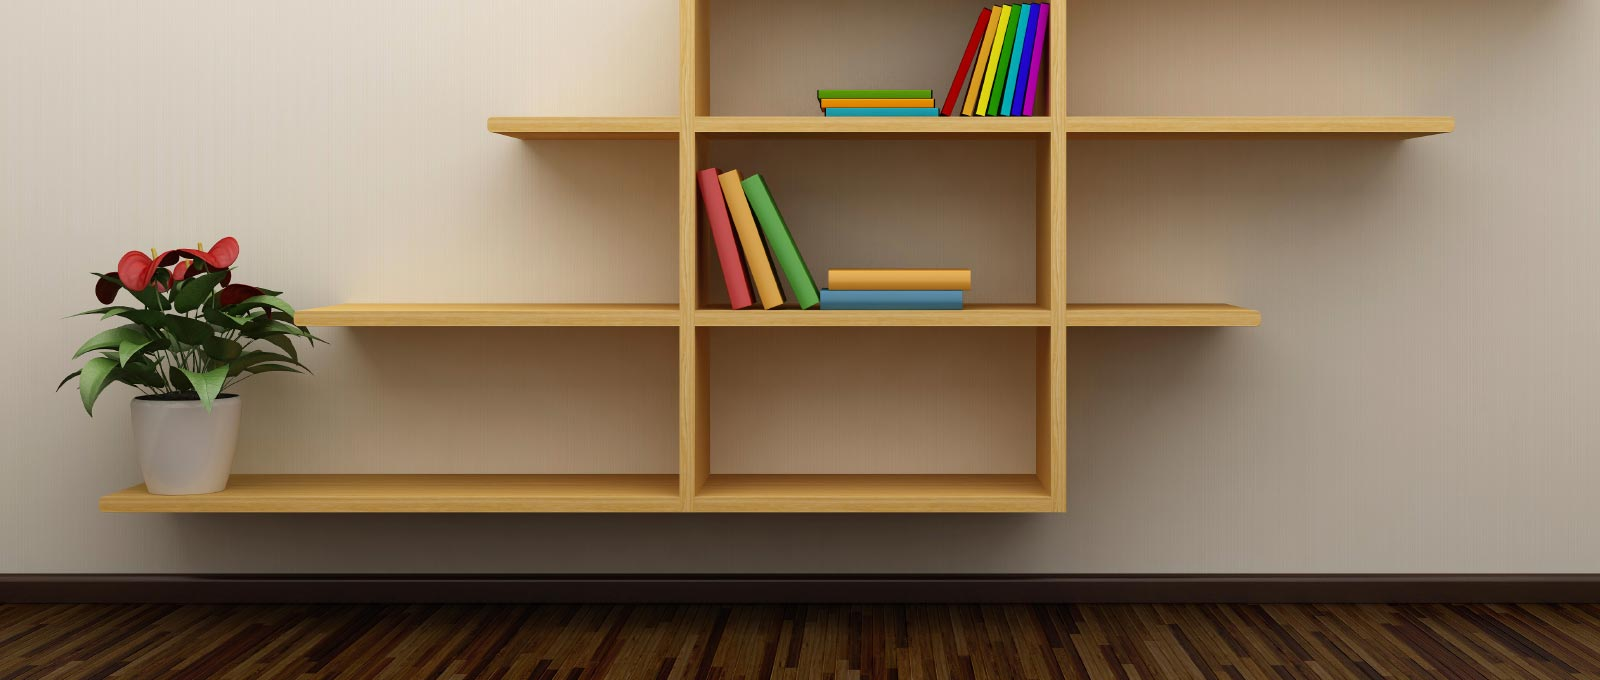 Blog-031-Shelving.jpg